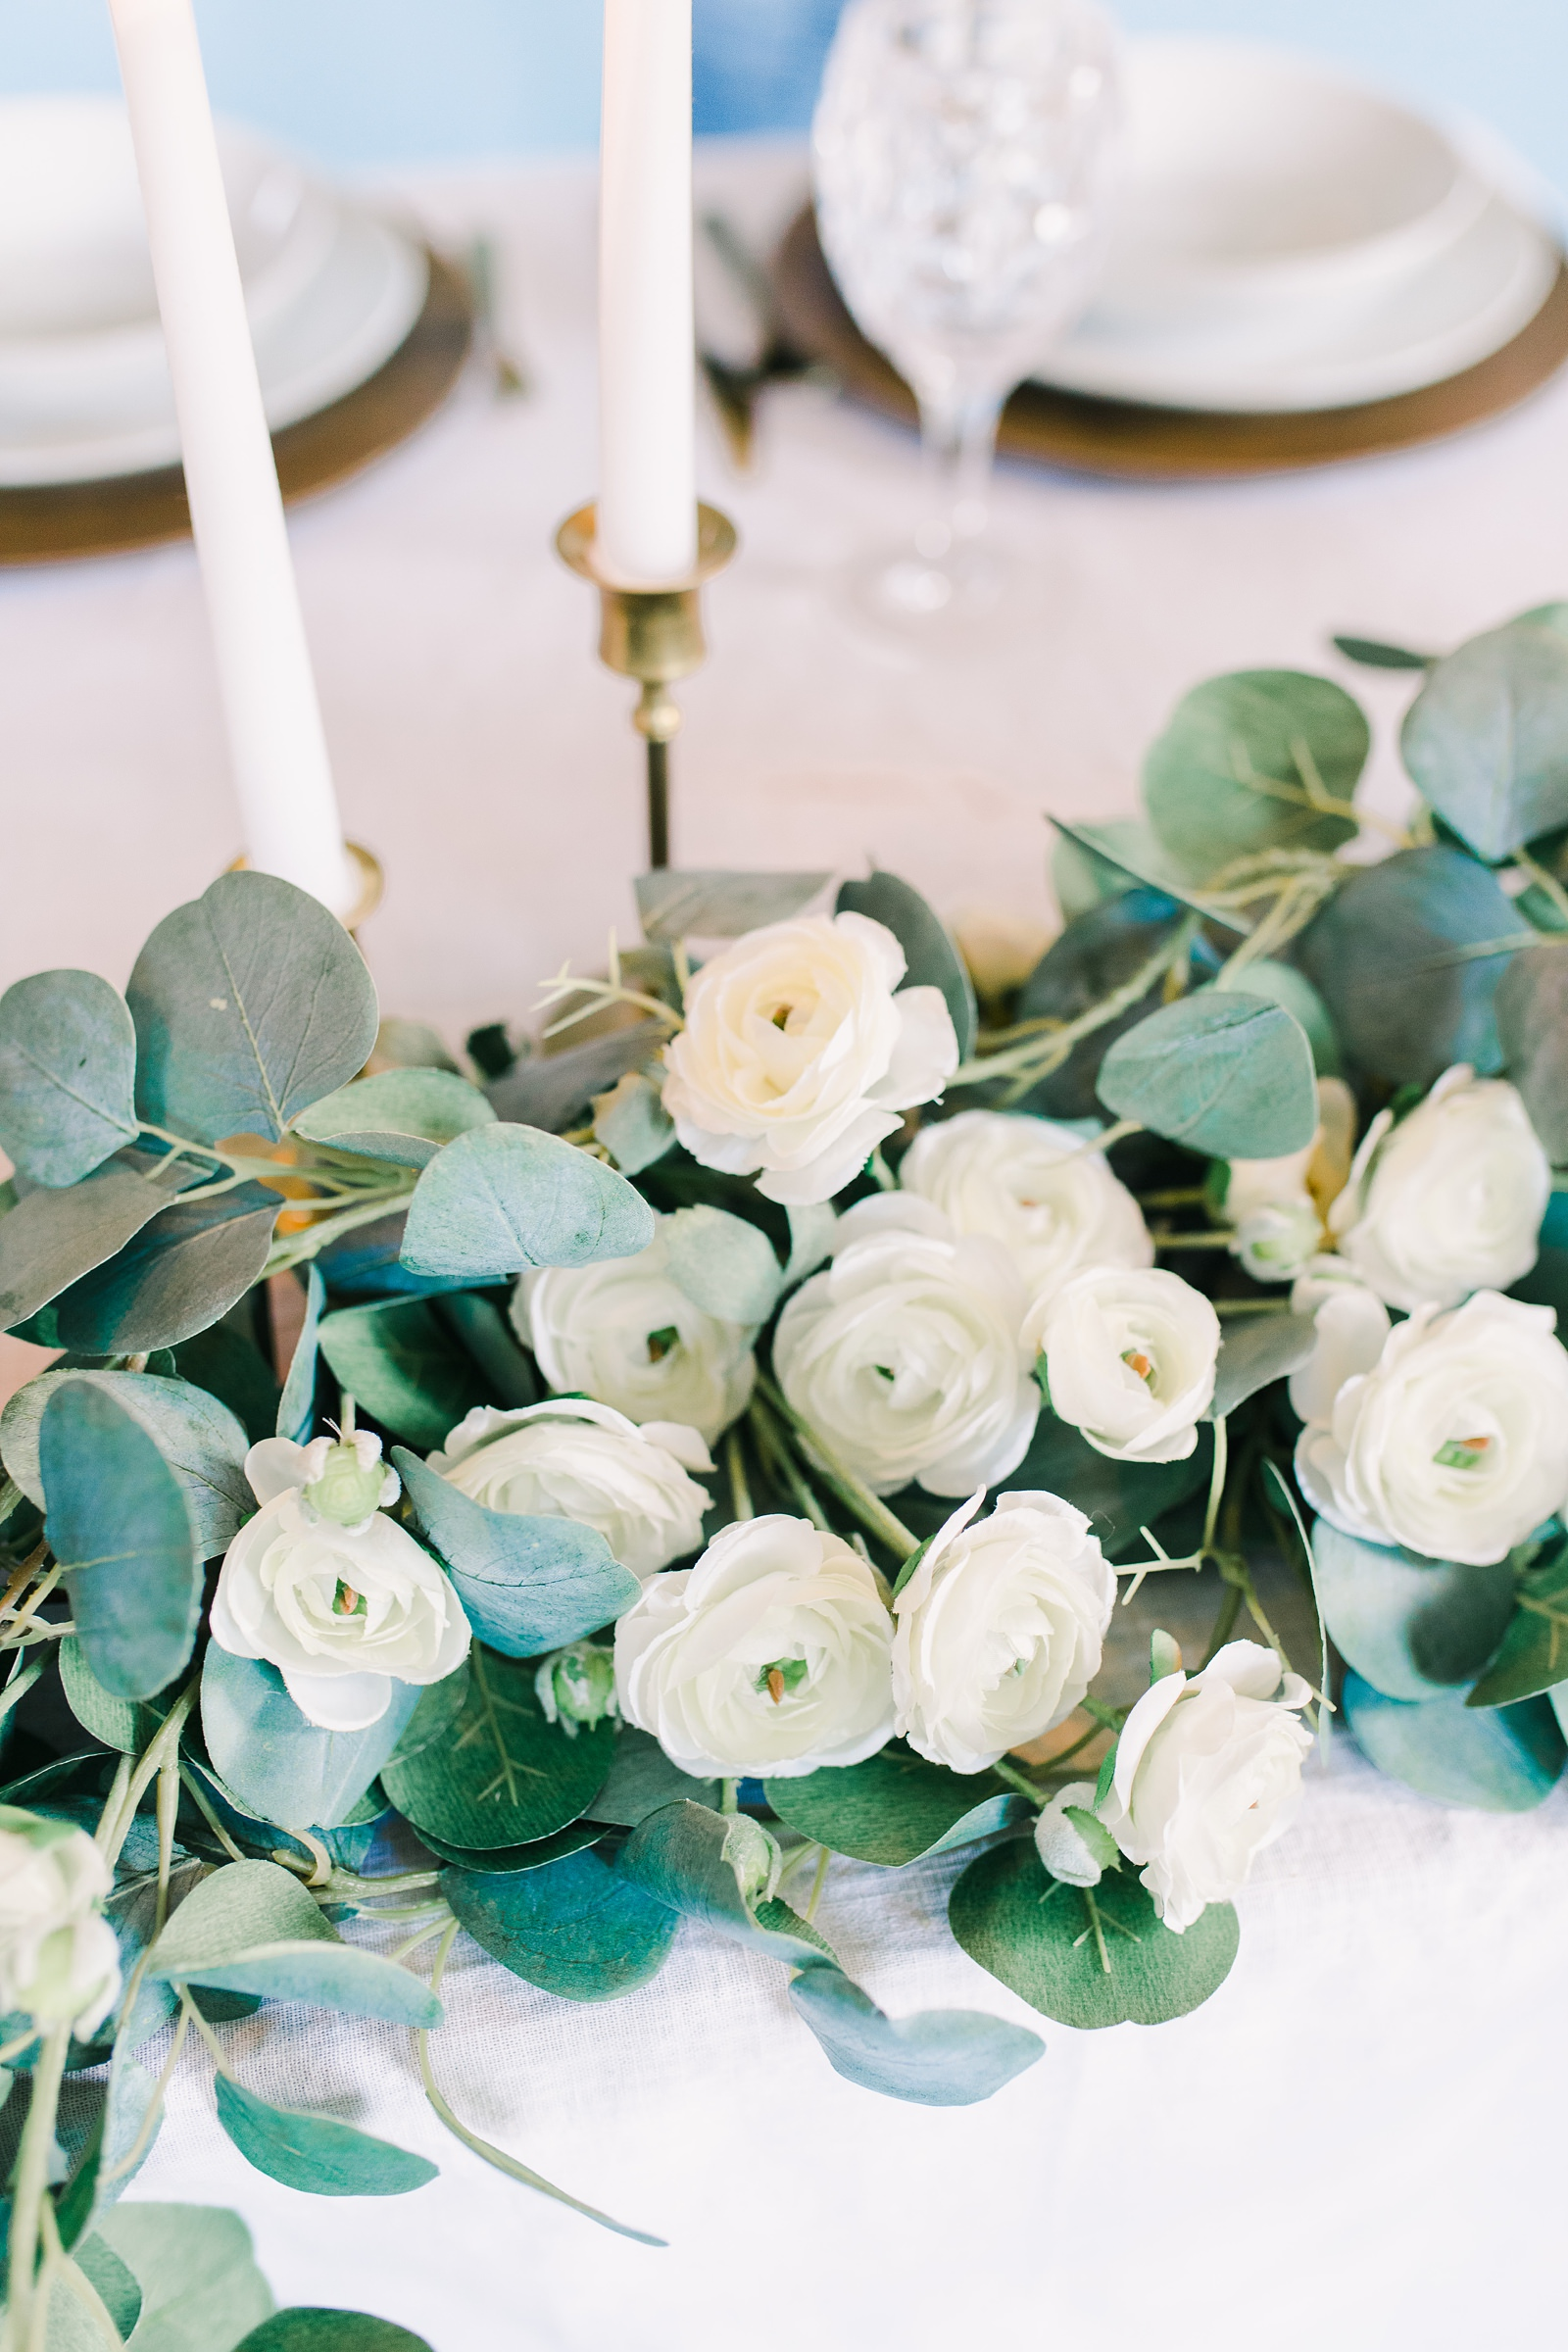 Utah wedding photography, sweetheart table with greenery garland centerpiece with eucalyptus and white ranunculus flowers and candlesticks and taper candles